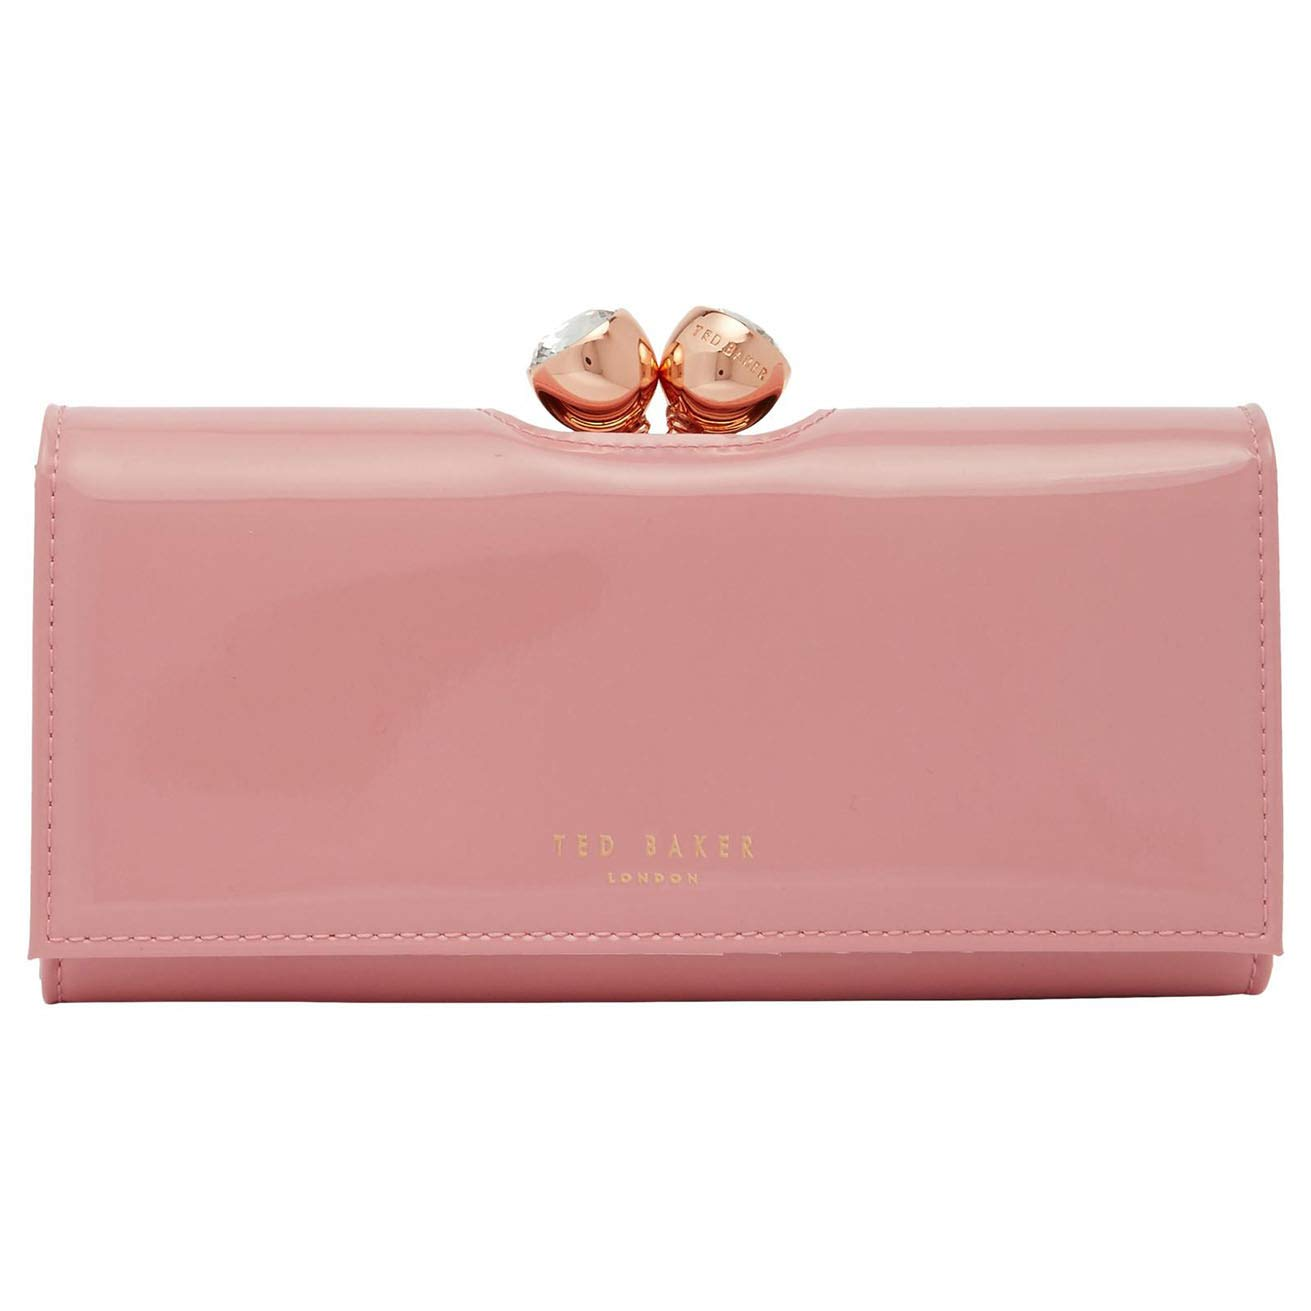 7ff51d0de2a Ted Baker New Womens Large Dusky Pink Crystal Bobble Leather Purse Wallet  Boxed: Amazon.co.uk: Luggage